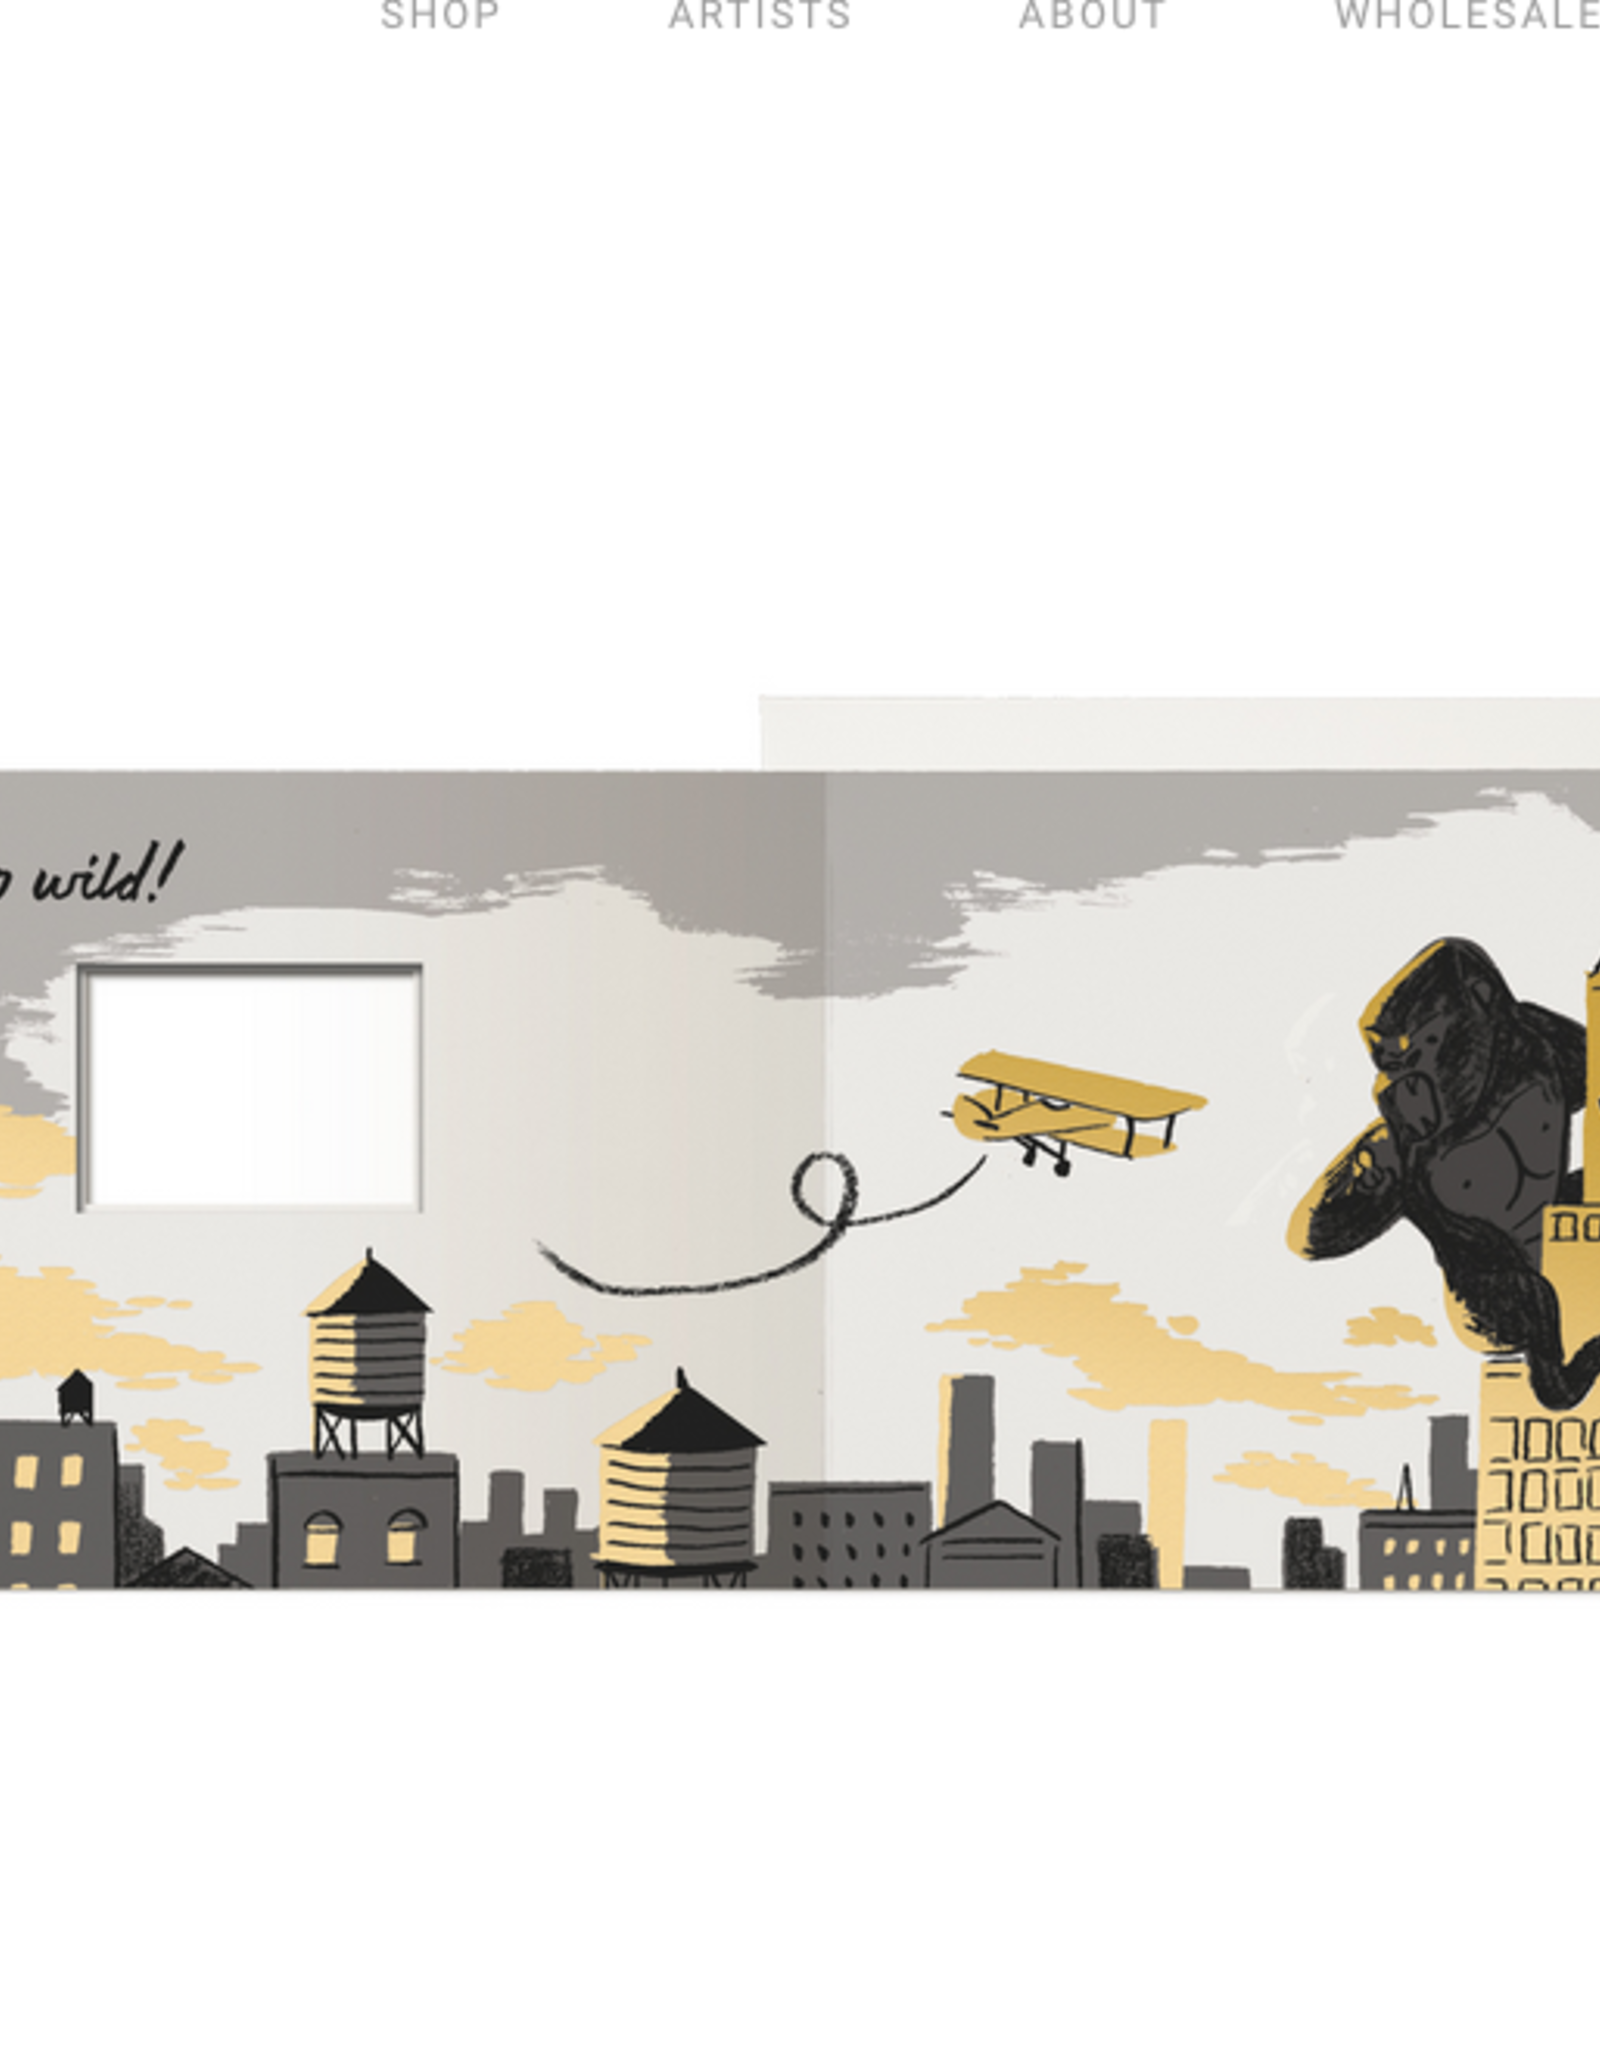 On Your Birthday, Go Wild King Kong Greeting Card